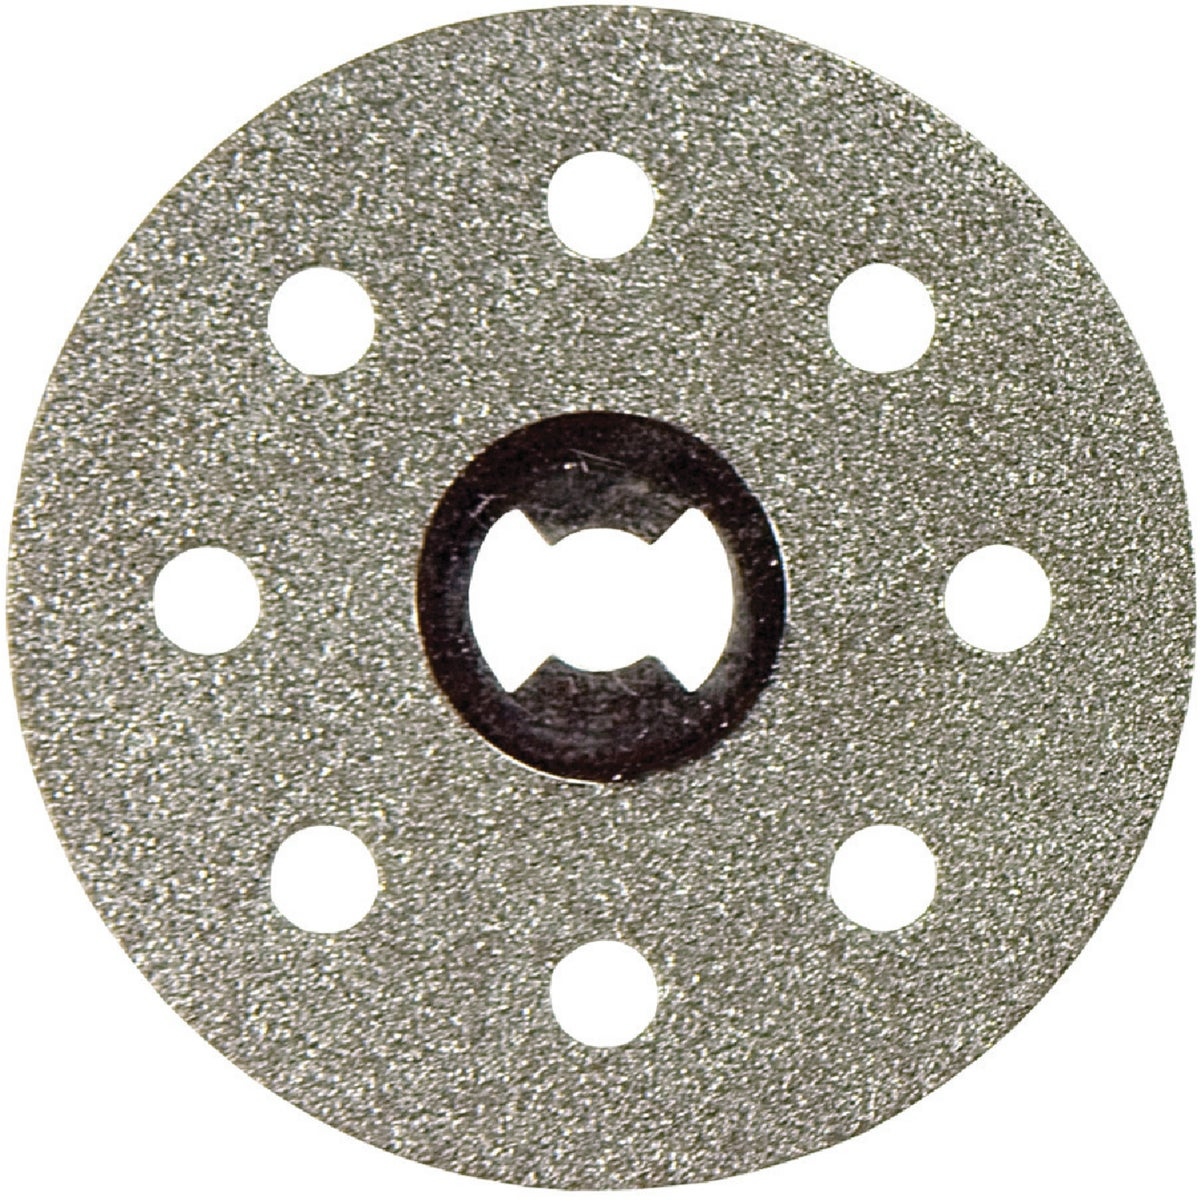 "1-1/2"" EZ LOCK DMD WHEEL - EZ545 by Dremel Mfg Co"